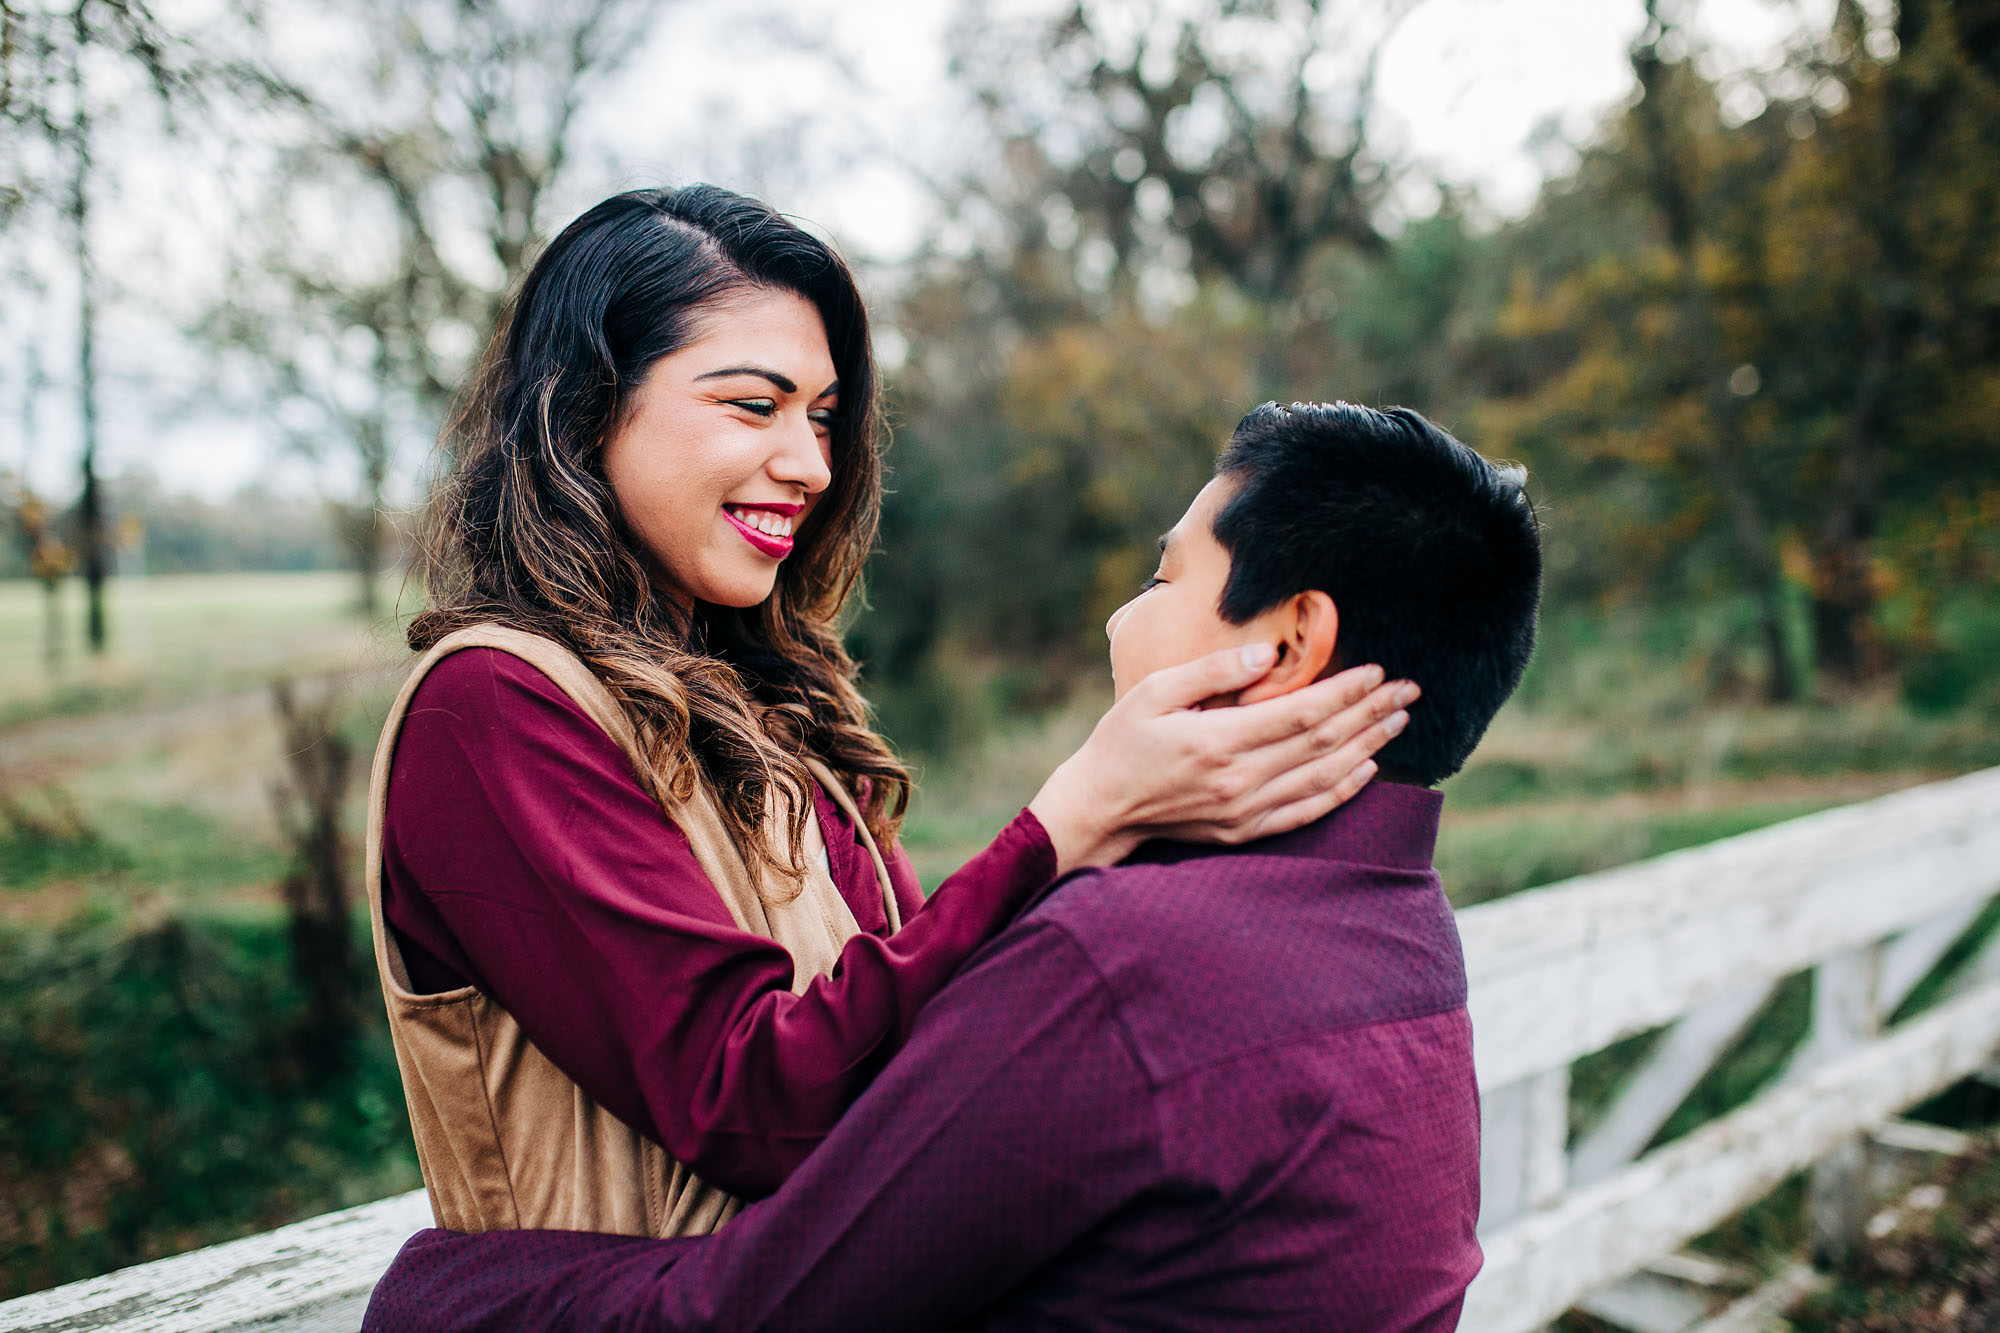 A mother looks lovingly at her son during lifestyle family pictures taken by Amy Wright Photo in Roseville, California.